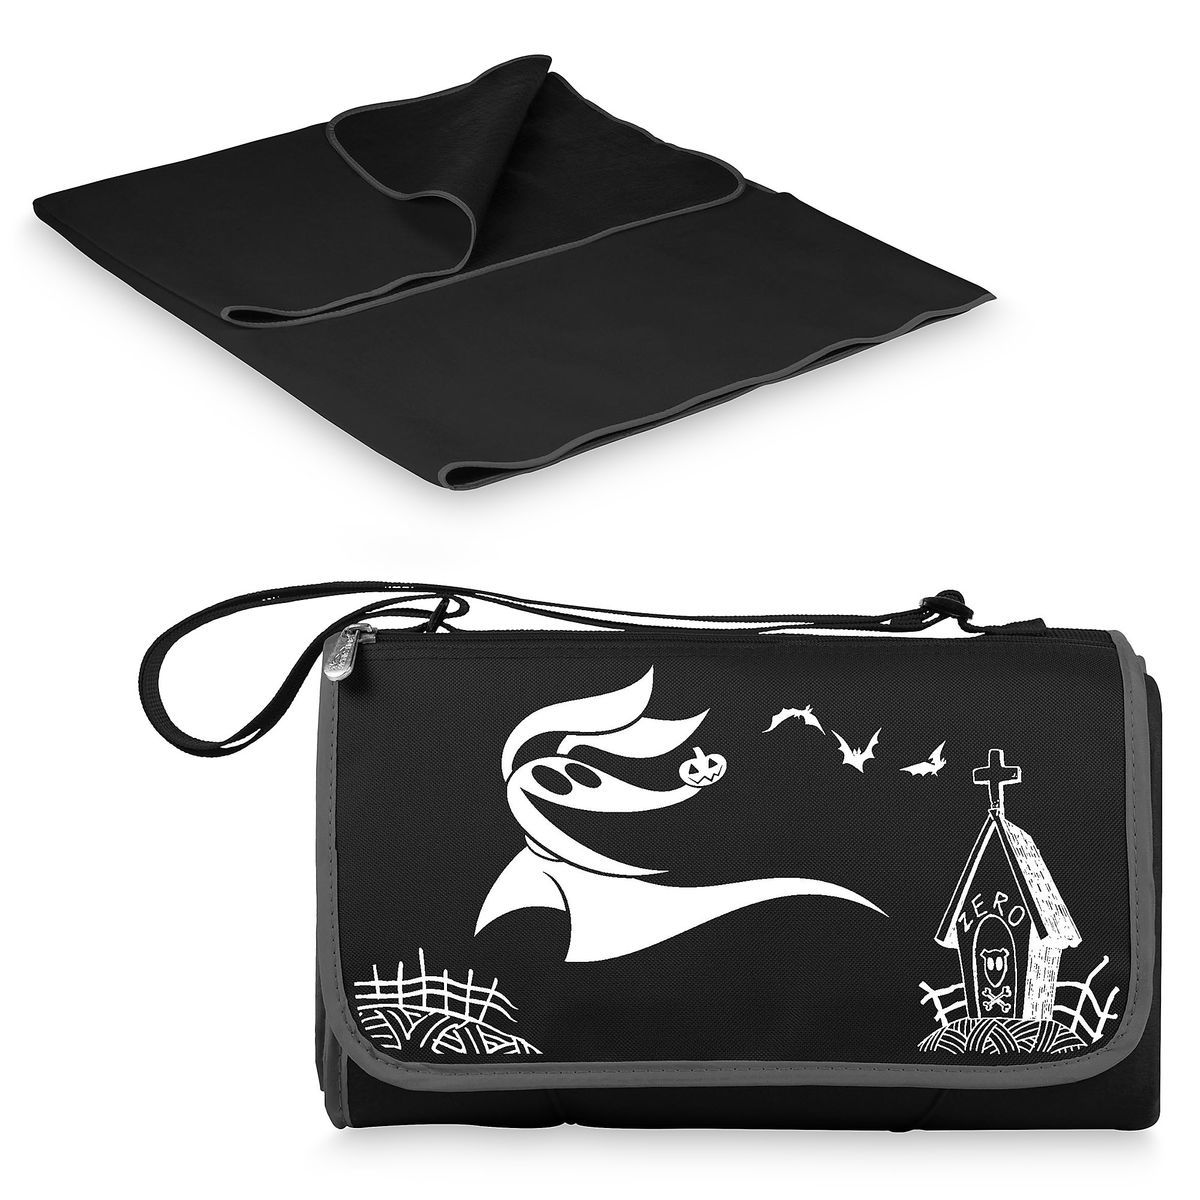 Zero Blanket Tote - The Nightmare Before Christmas | shopDisney